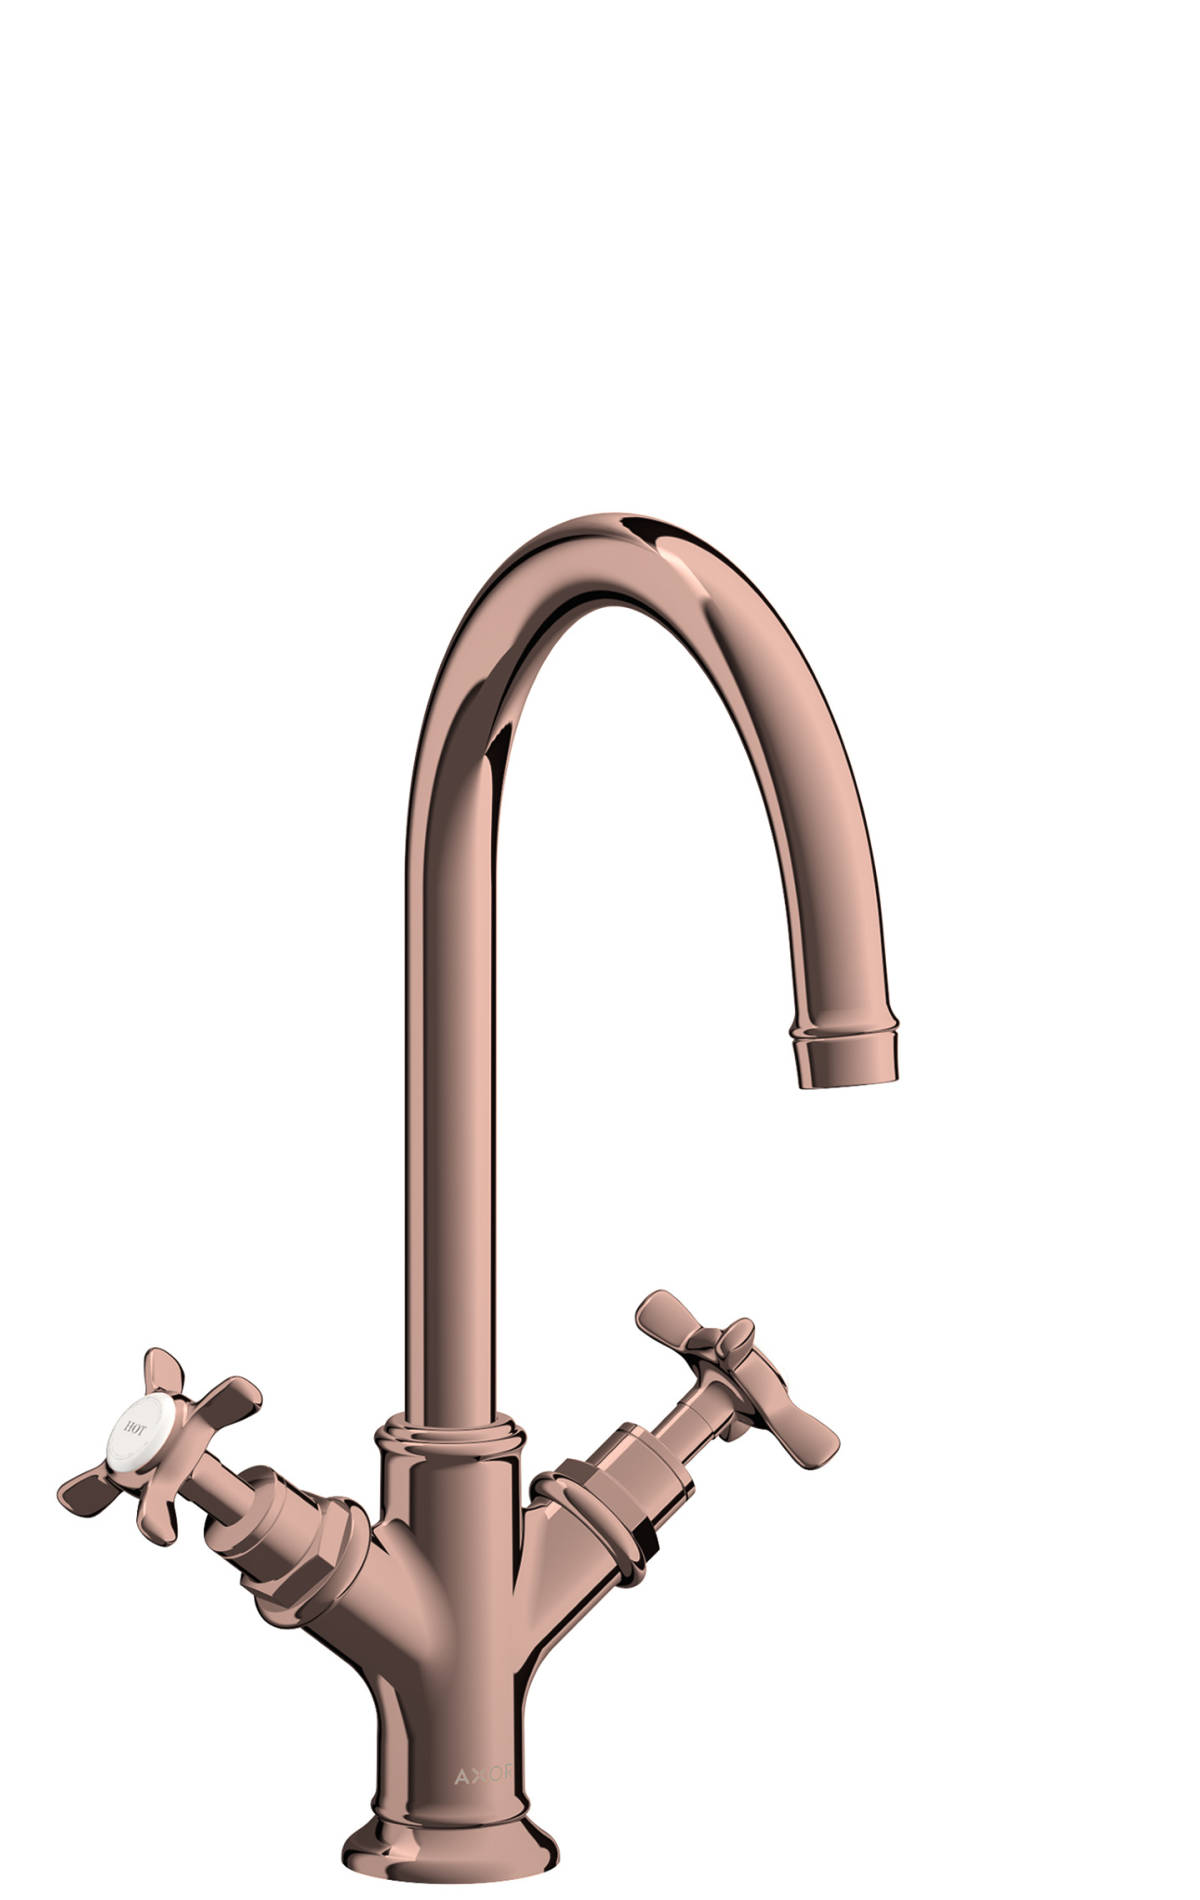 2-handle basin mixer 210 with cross handles and pop-up waste set, Polished Red Gold, 16502300